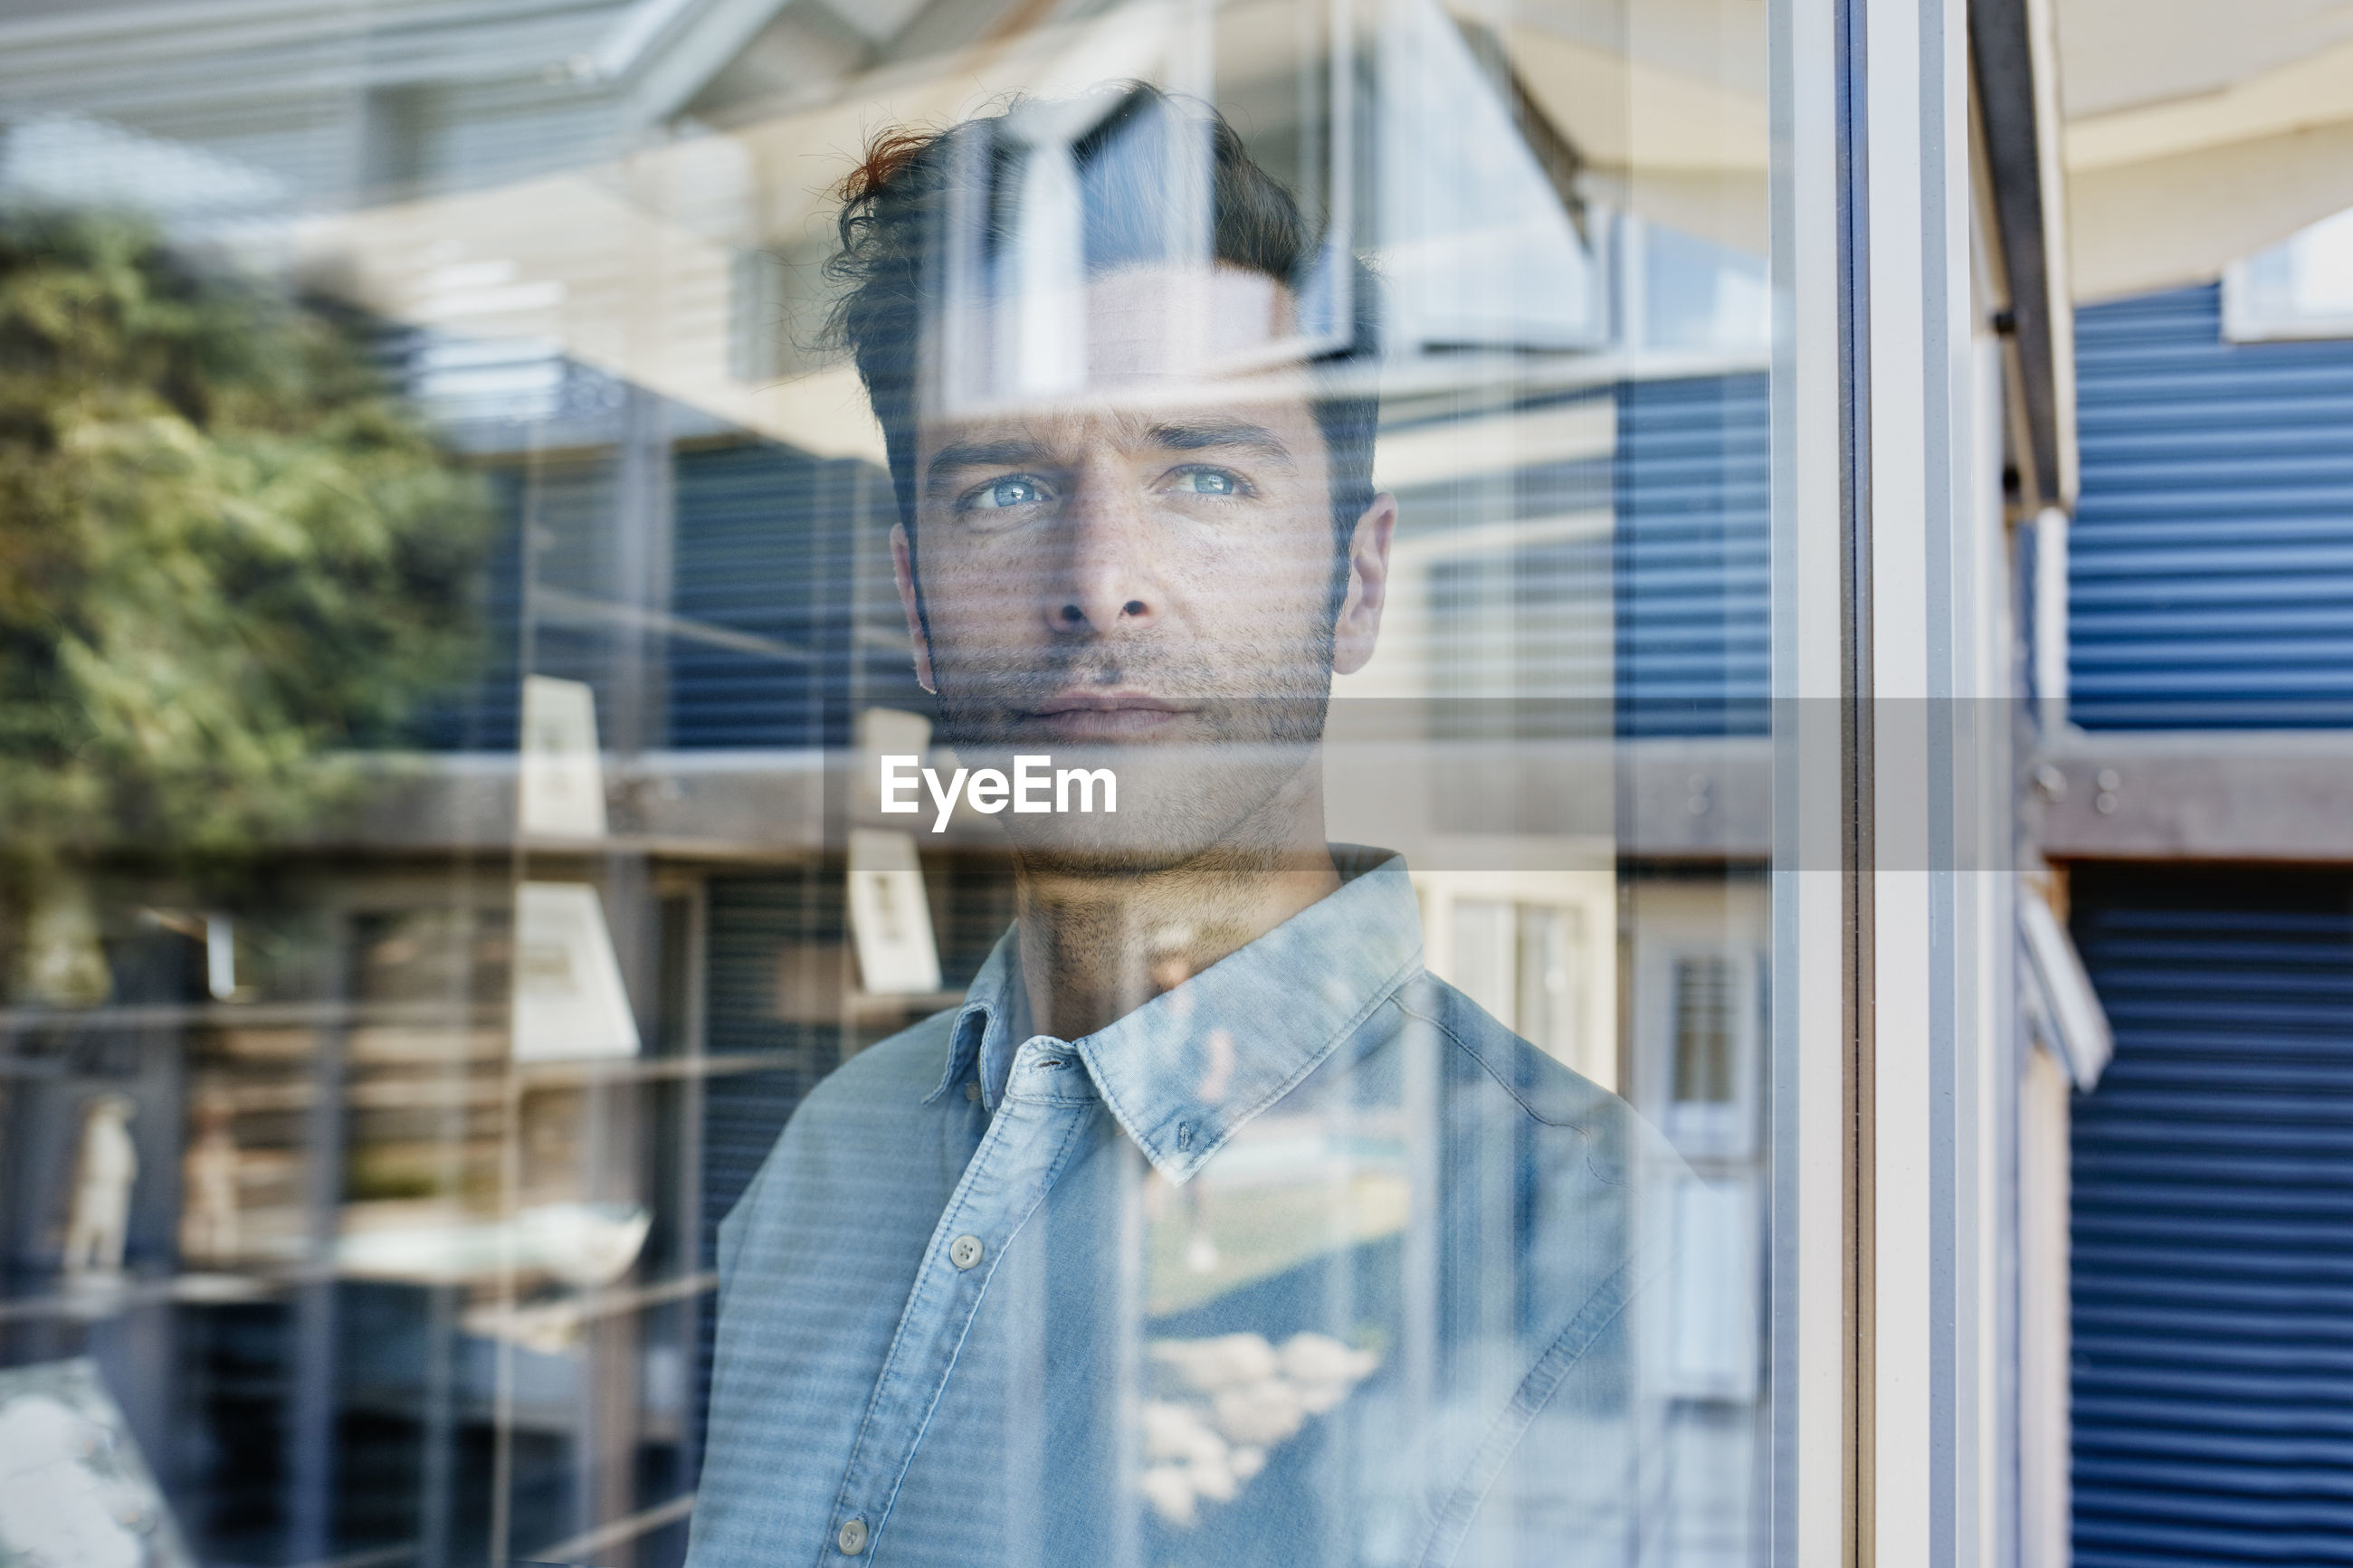 DIGITAL COMPOSITE IMAGE OF MAN WITH REFLECTION OF WINDOW